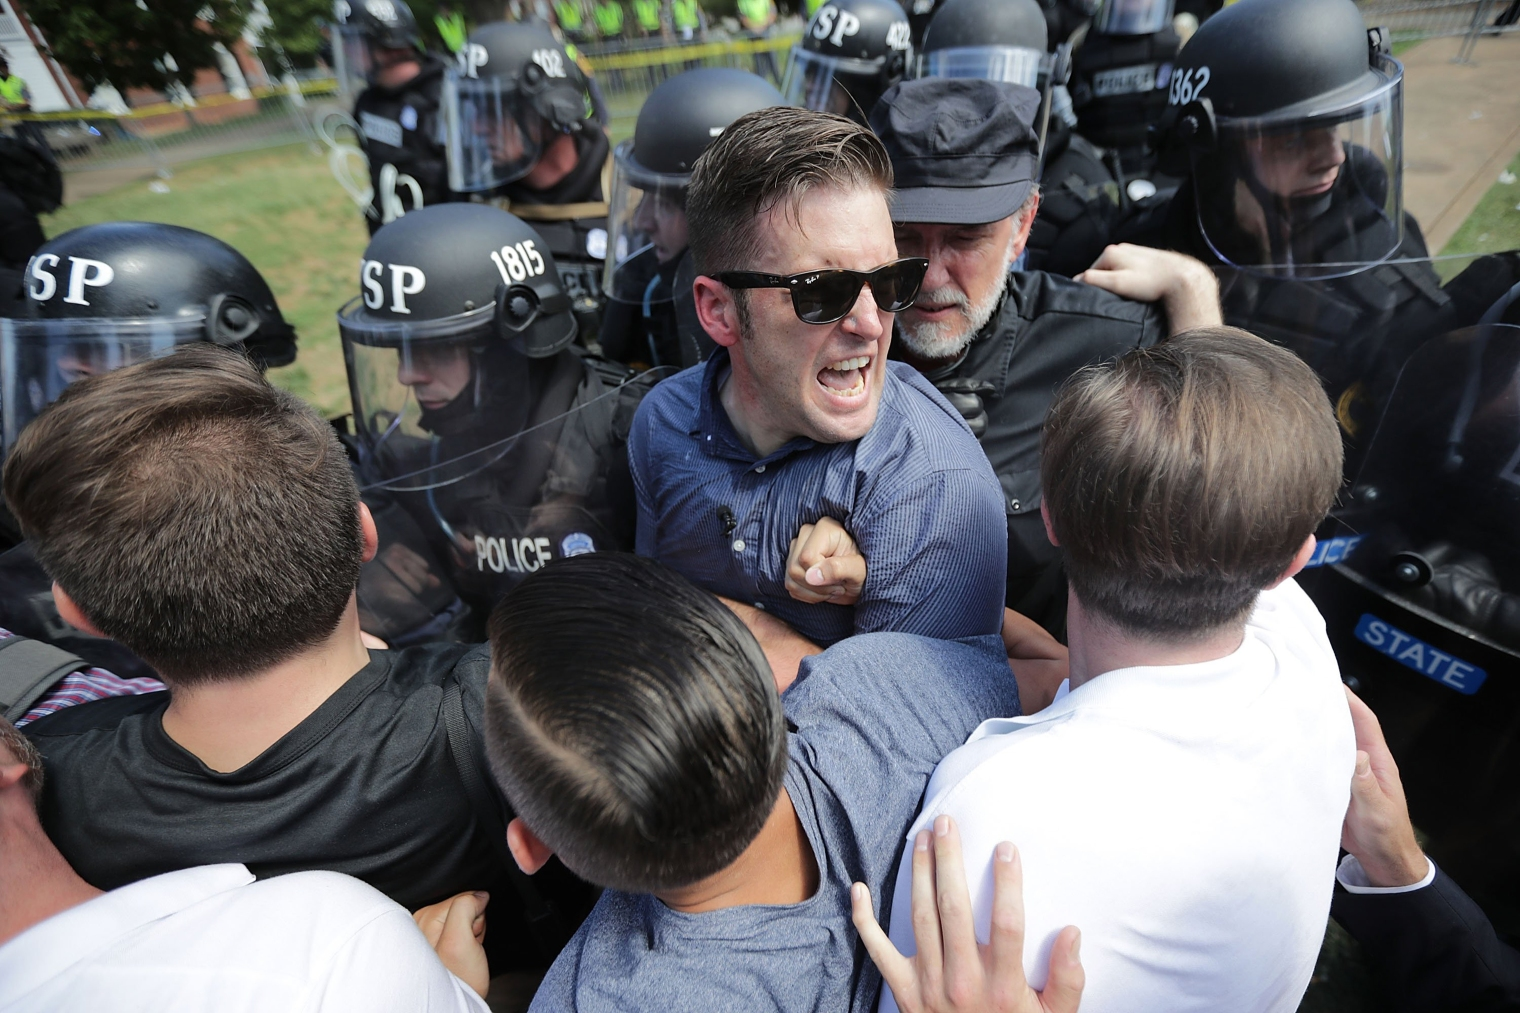 White nationalist Richard Spencer and his supporters clash with Virginia State Police in Lee Park after the